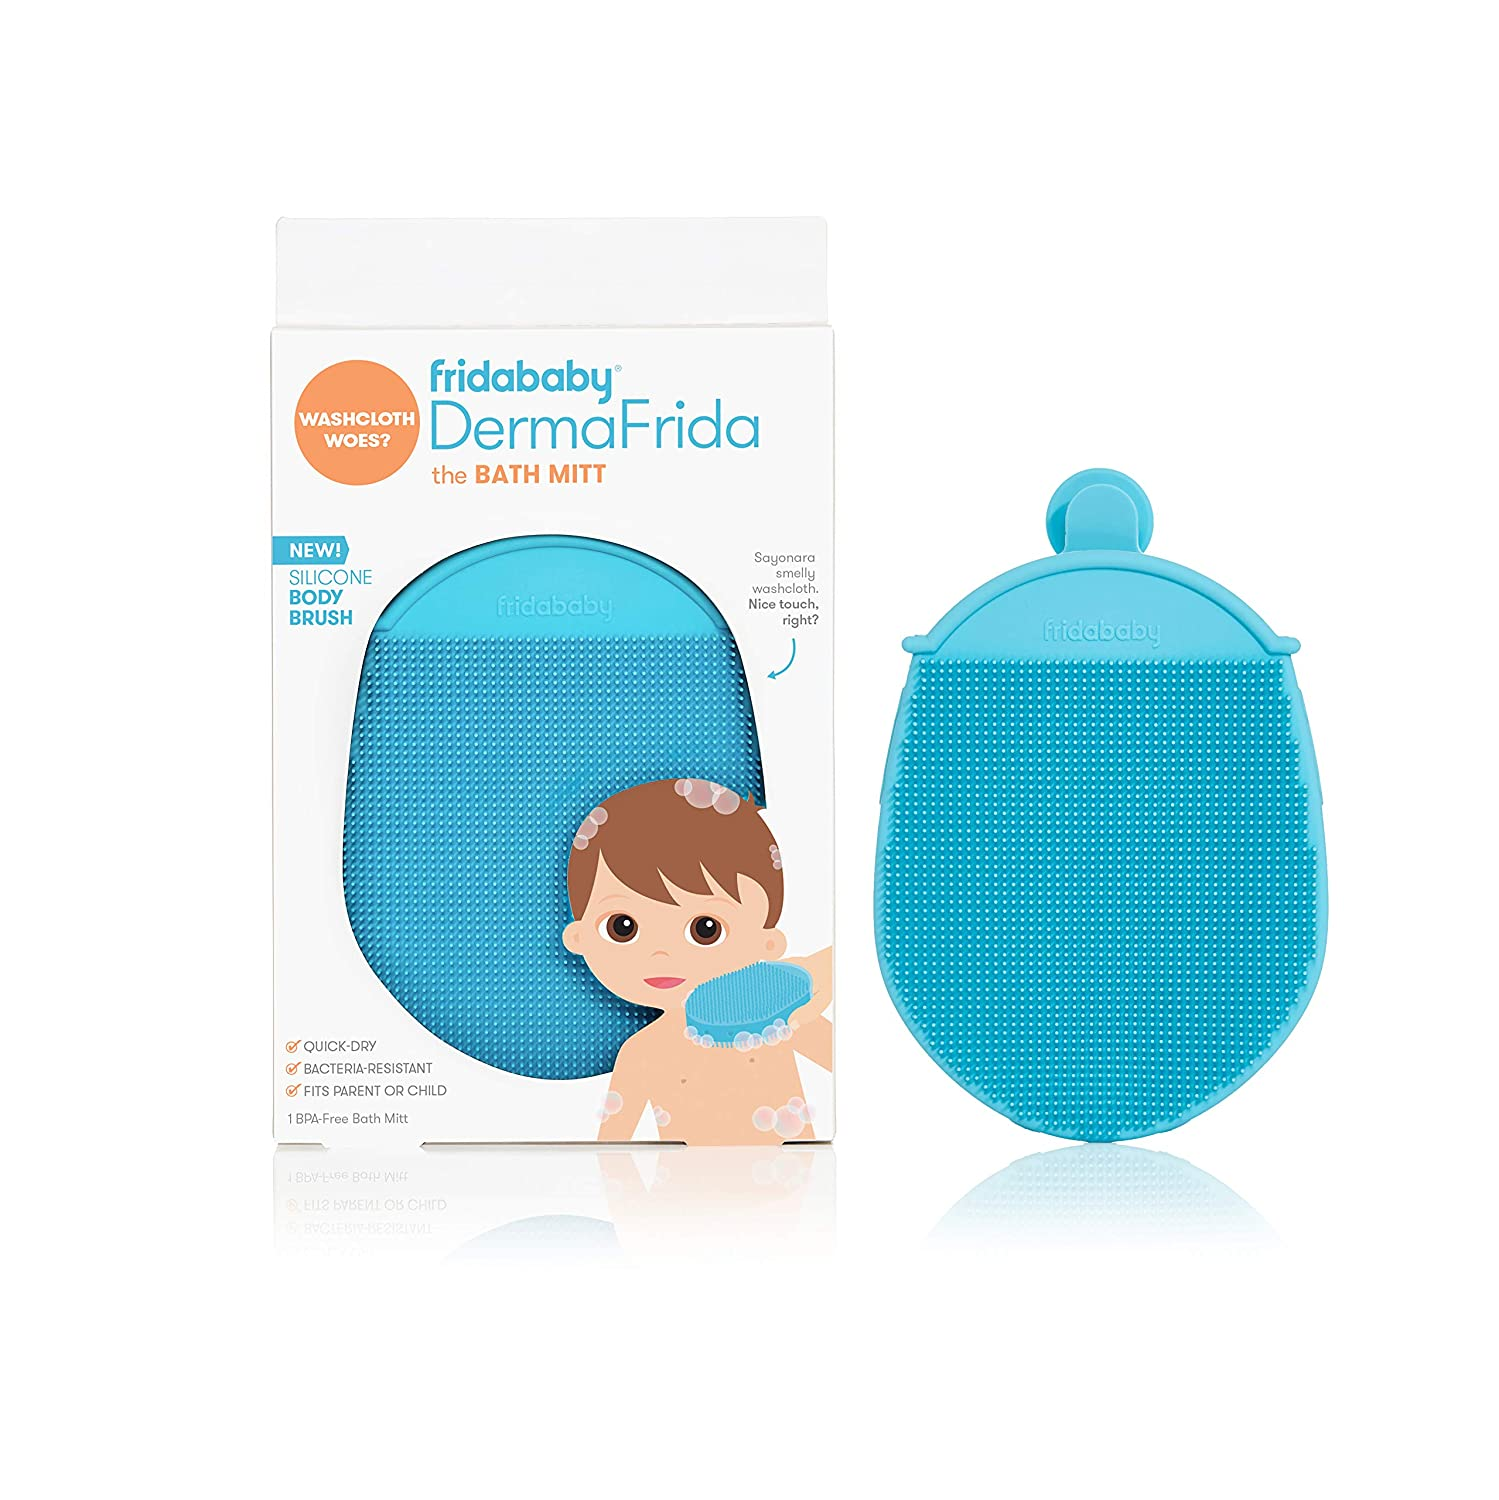 Toddler Silicone Body Bath Brush by Fridababy Bacteria-Resistant Replacement to Kids Washcloth Quick-Dry Exfoliating Mitt Fits Both Parent or Child DermaFrida The Bath Mitt